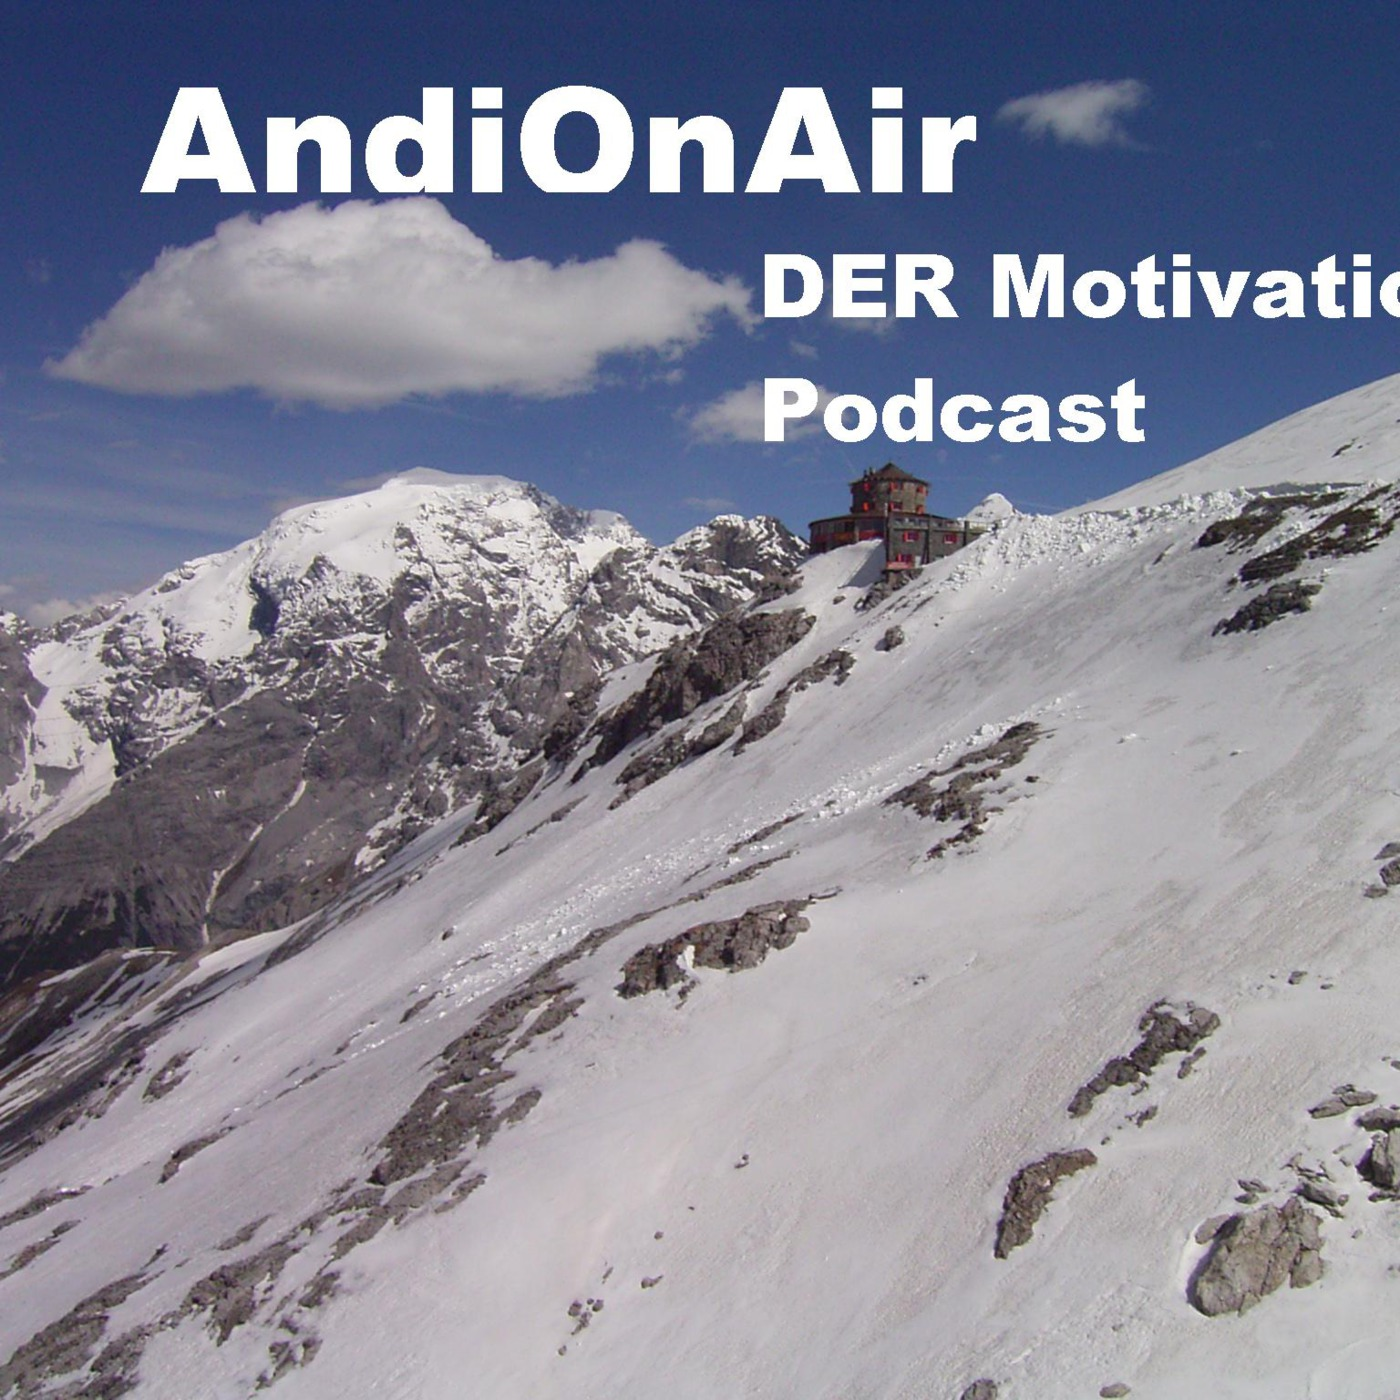 AndiOnAir - DER Motivations-Podcast